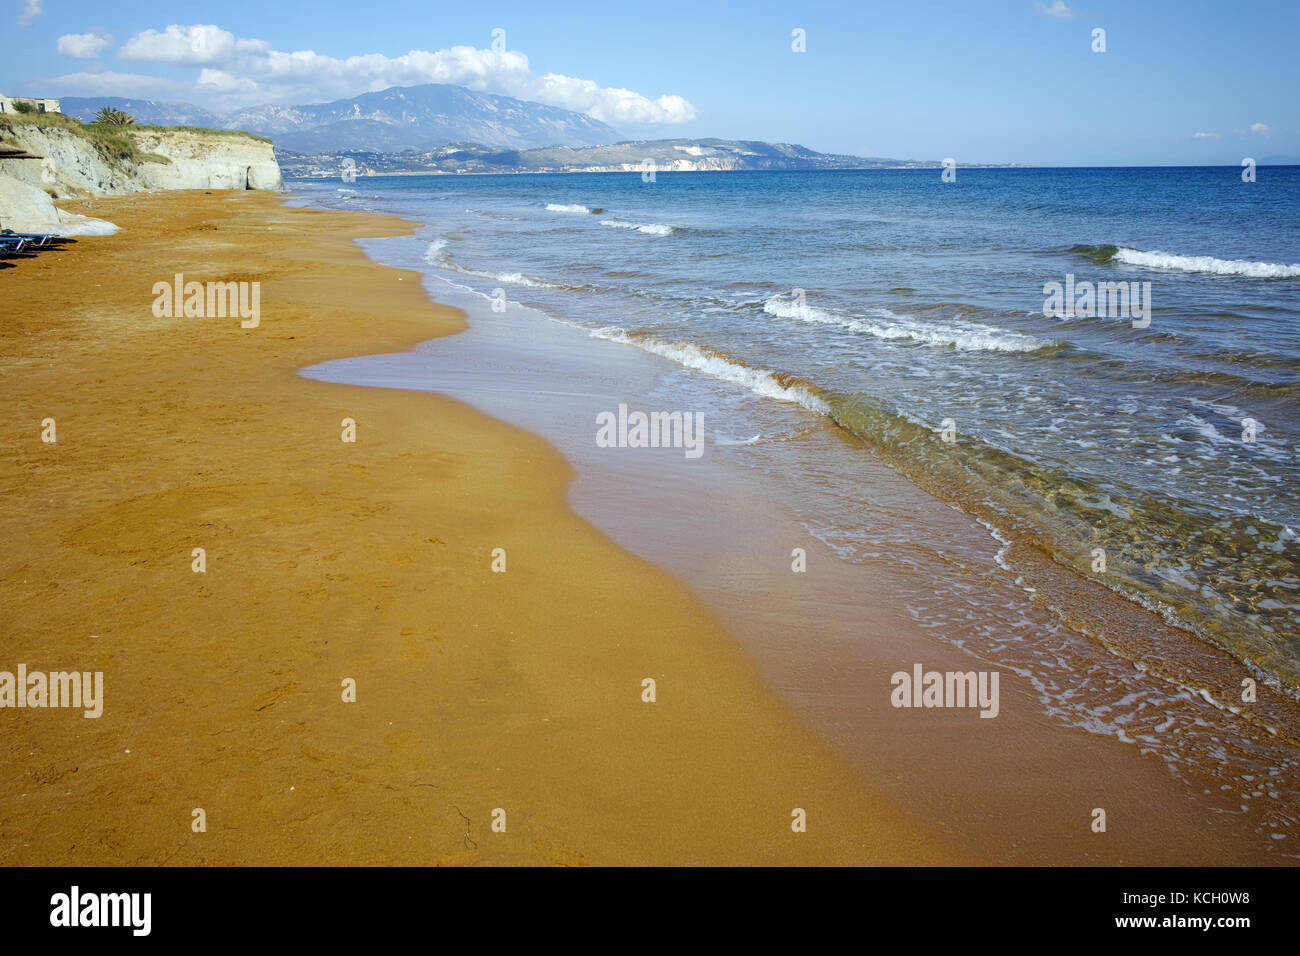 amazing view of Xi Beach,beach with red sand in Kefalonia, Ionian islands, Greece - Stock Image